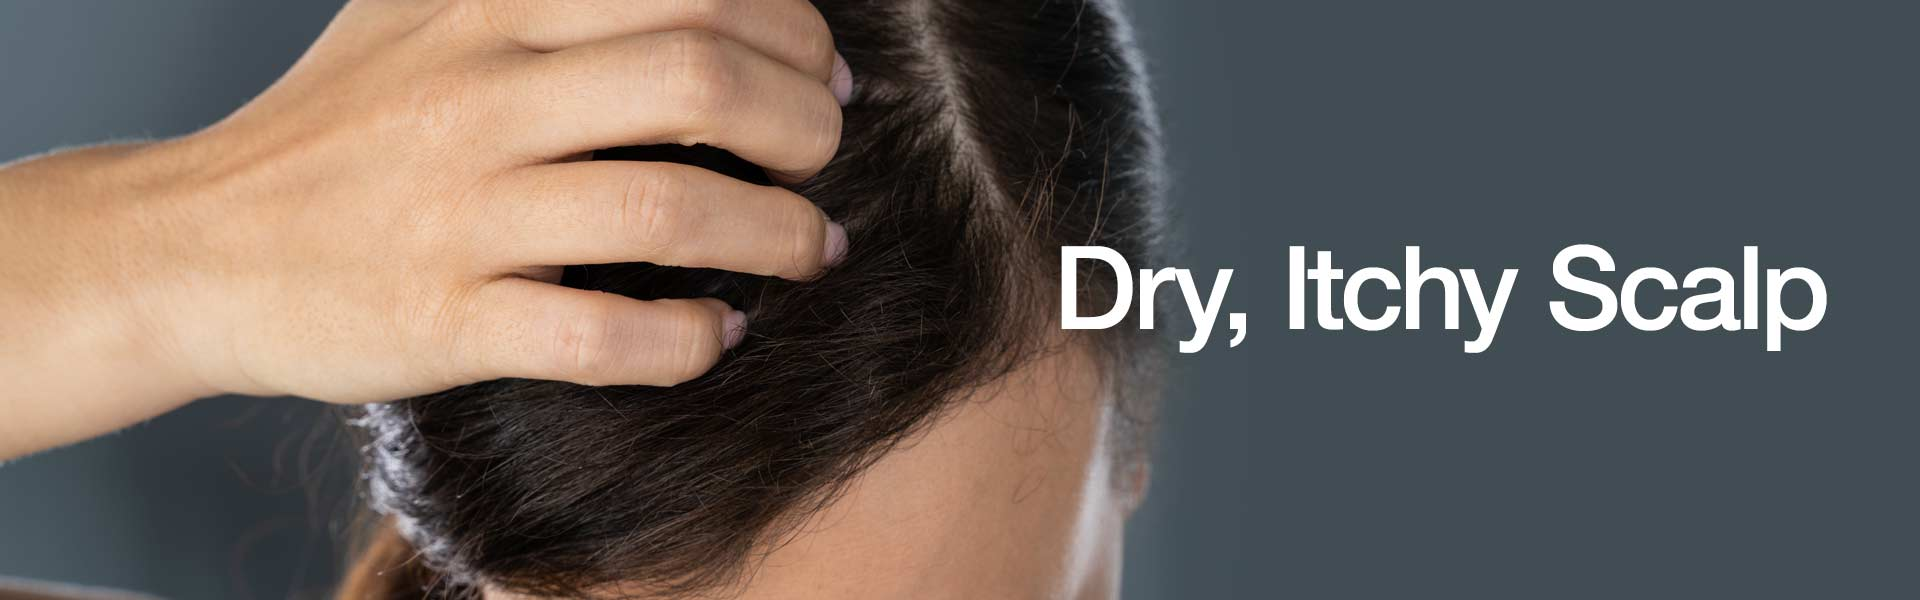 Dry, Itchy Scalp